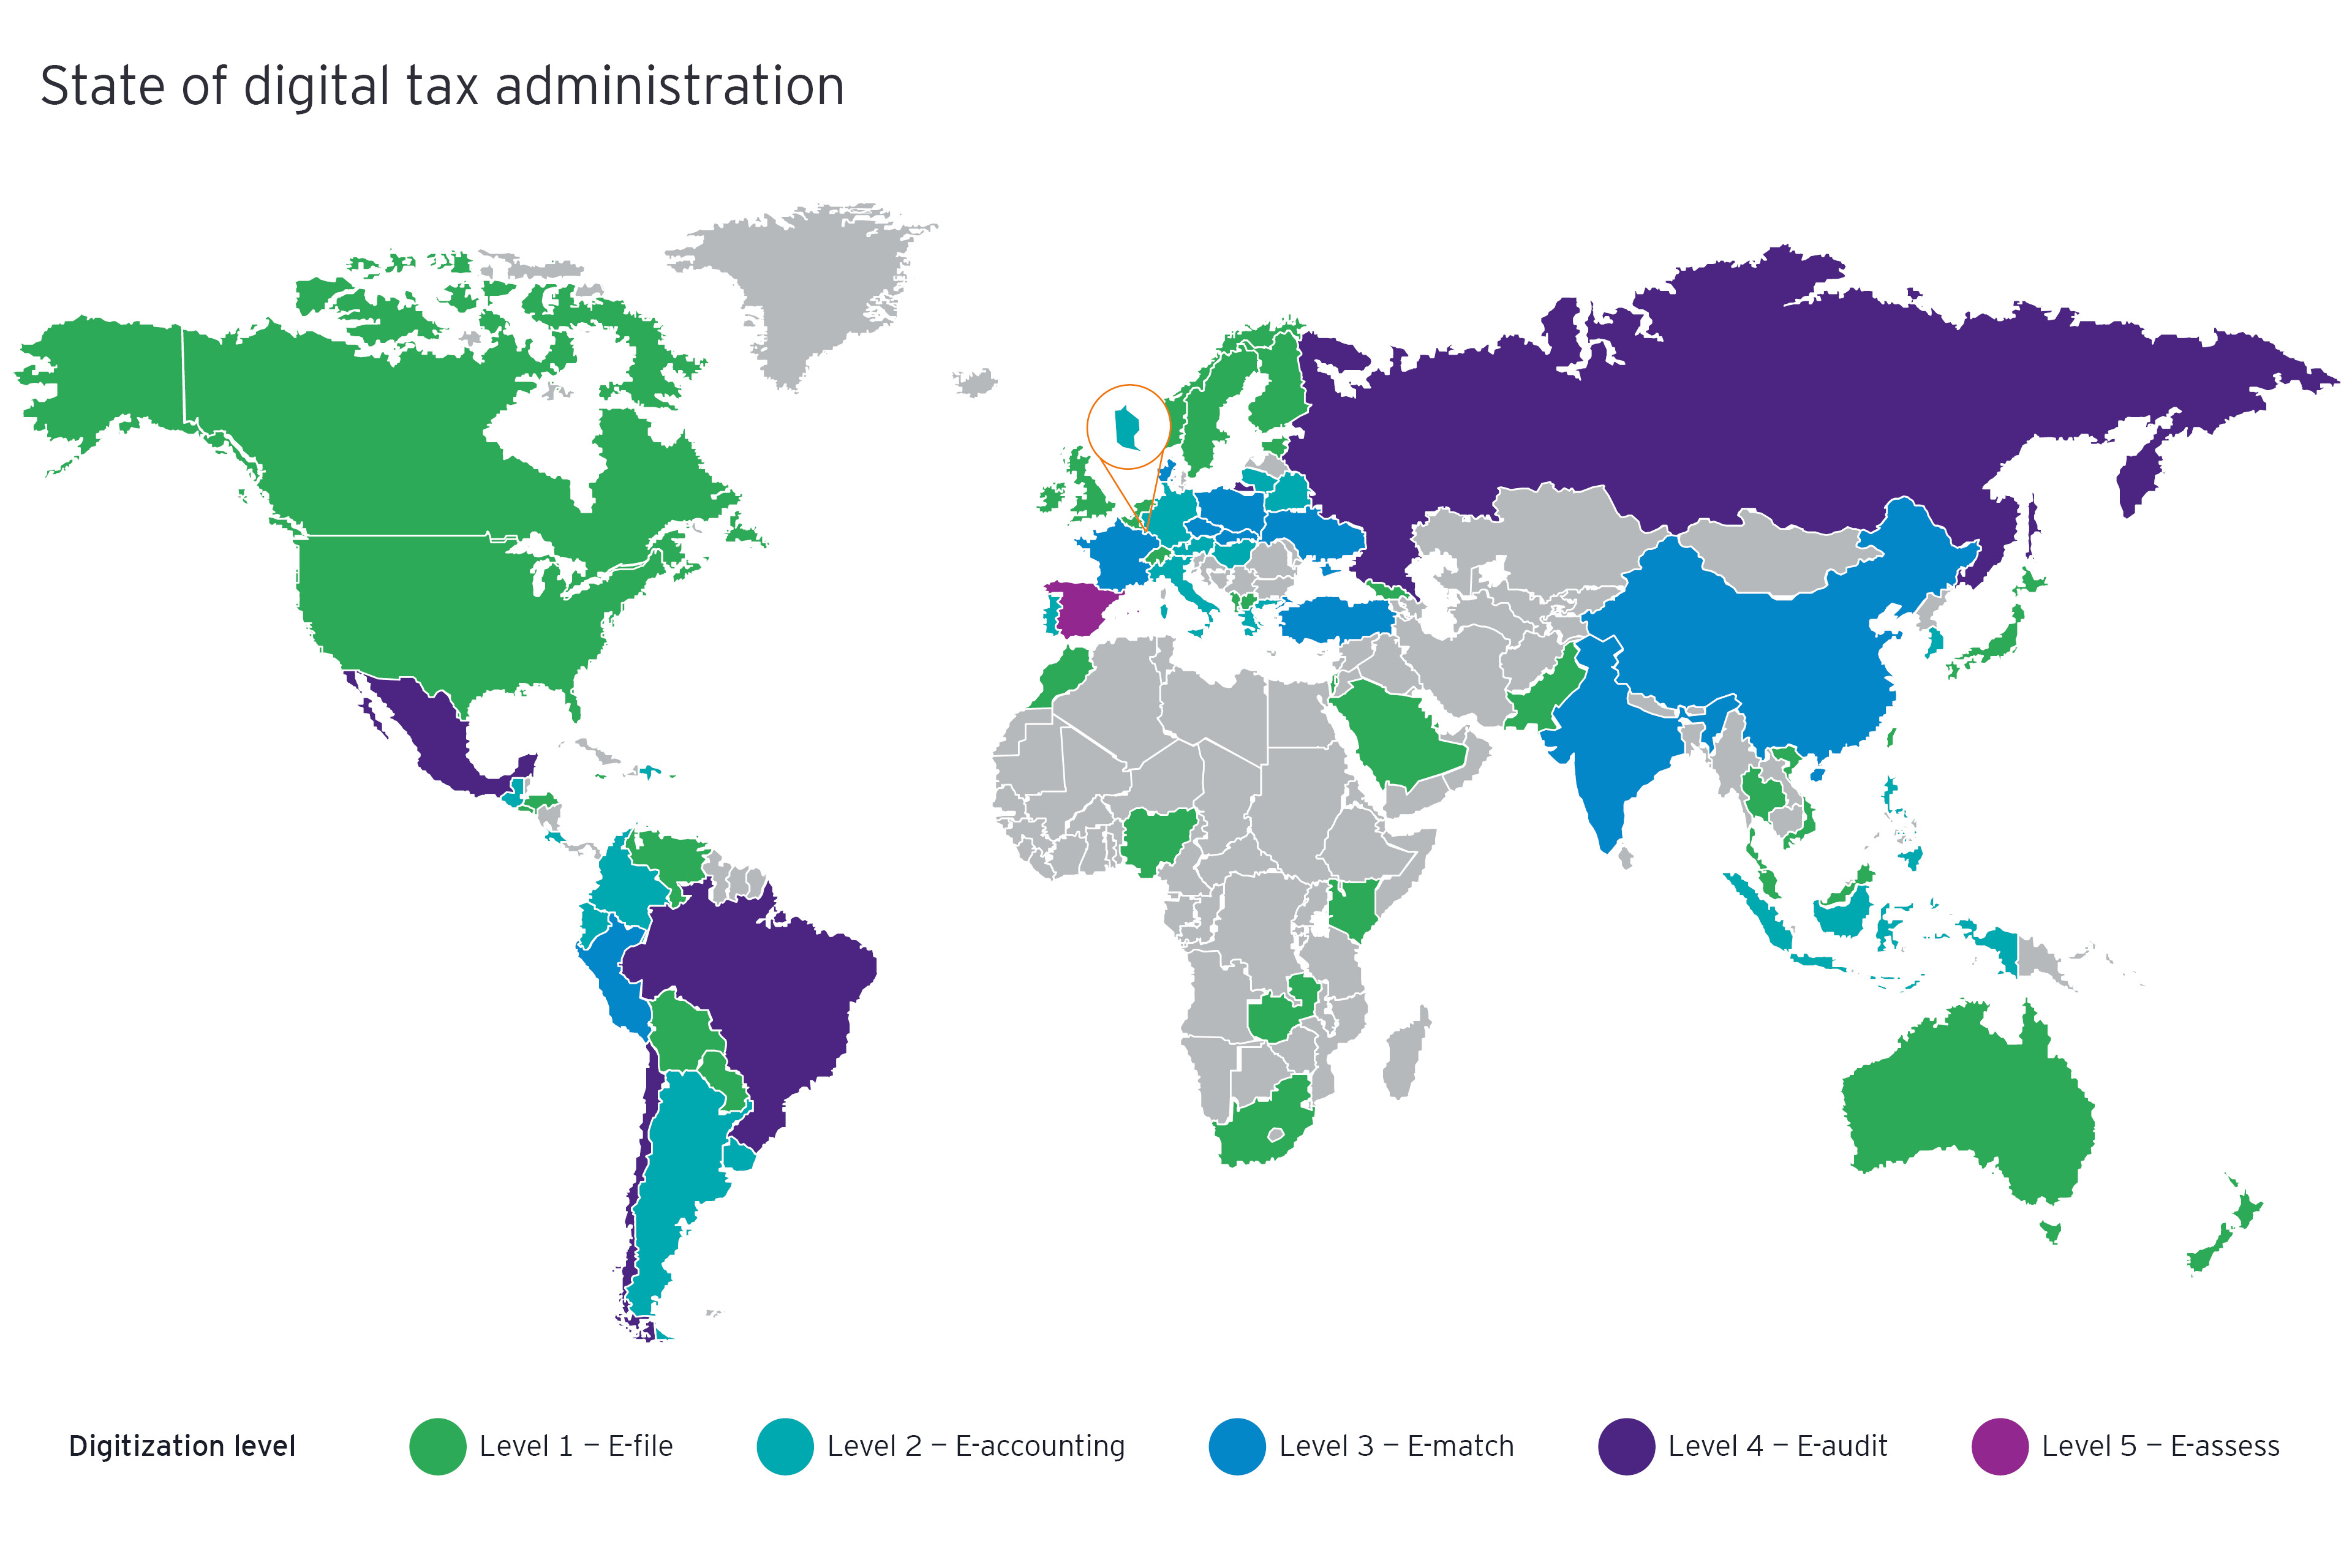 State of digital tax administration map